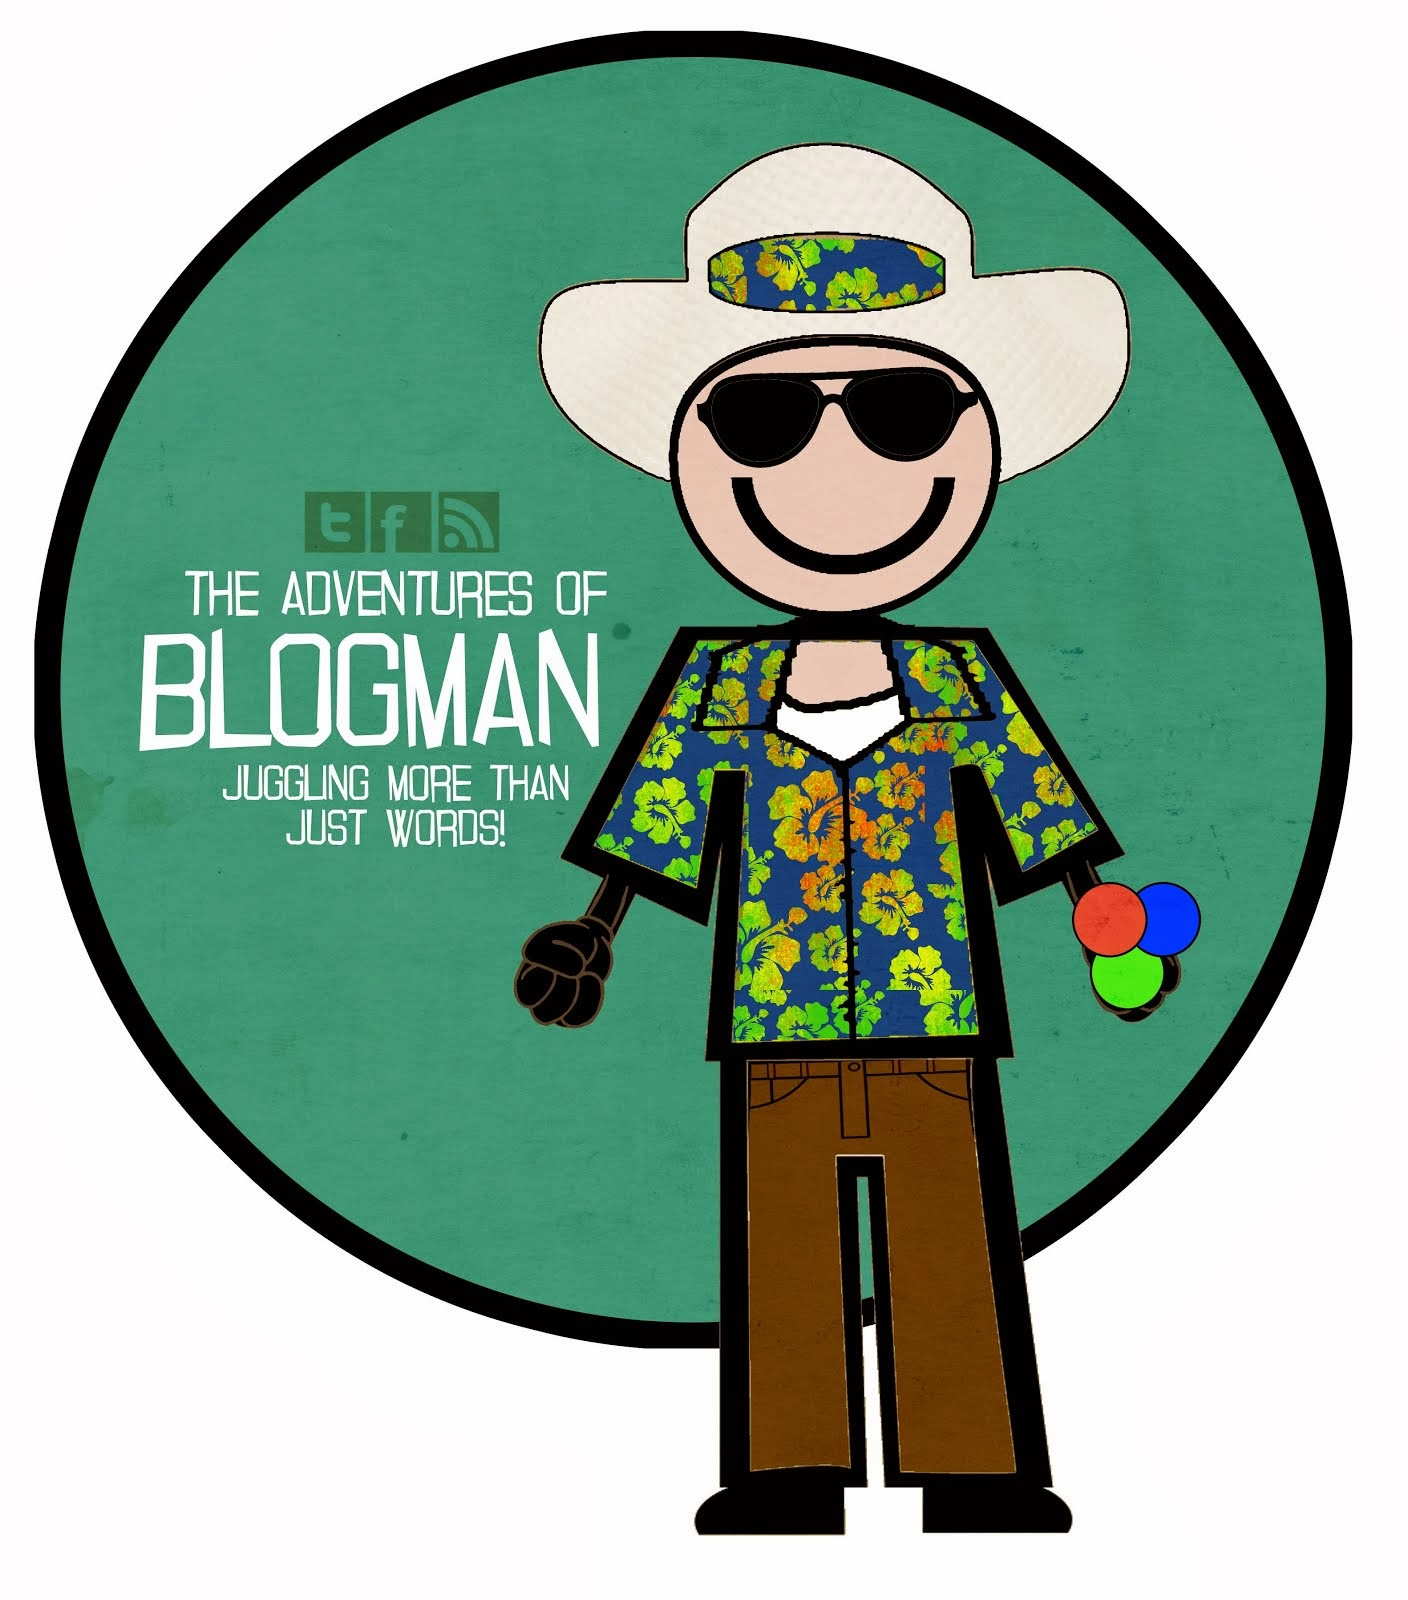 I Am BlogMan!